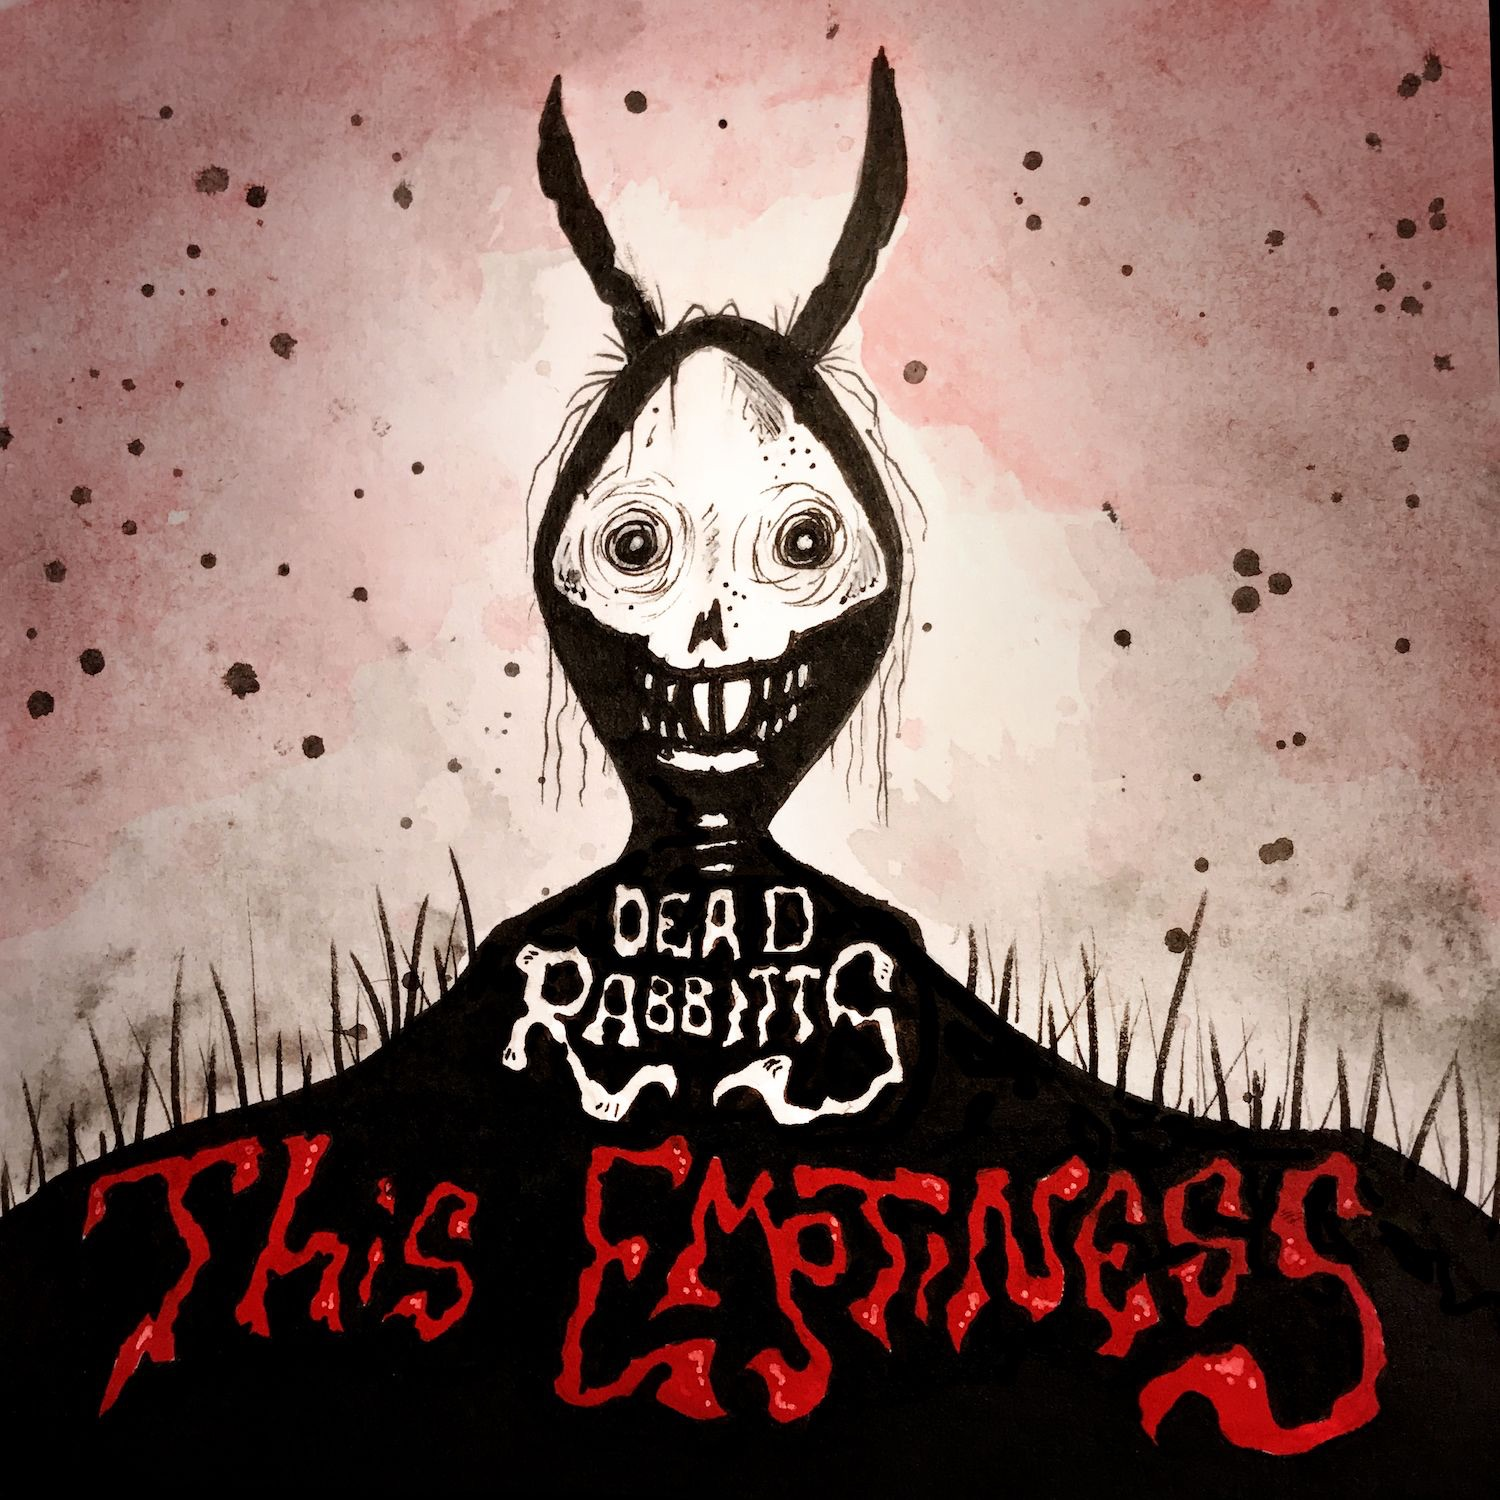 The Dead Rabbitts - This Emptiness (2017)